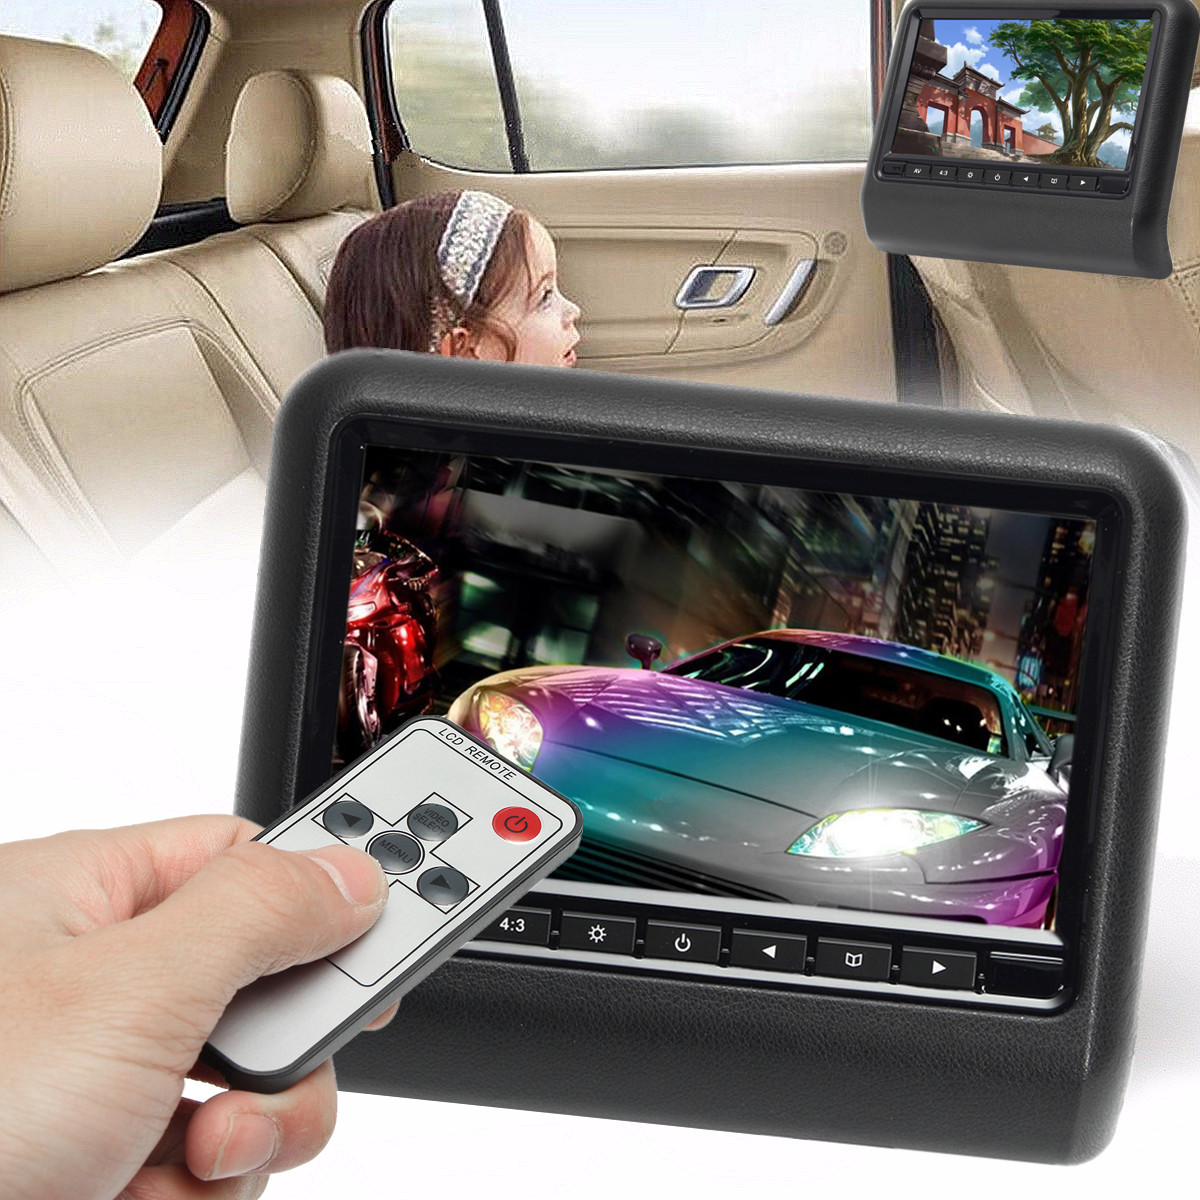 DC 12V 5W 9 Inch Car Headrest Backseat Monitor DVD Video Player Display LCD Screen Mount PAL/NTSC Image Format 2 Way Video Input 1pair 90 degree right left angle mini 5pin usb b male to micro usb female plug connector adapter converter aqjg